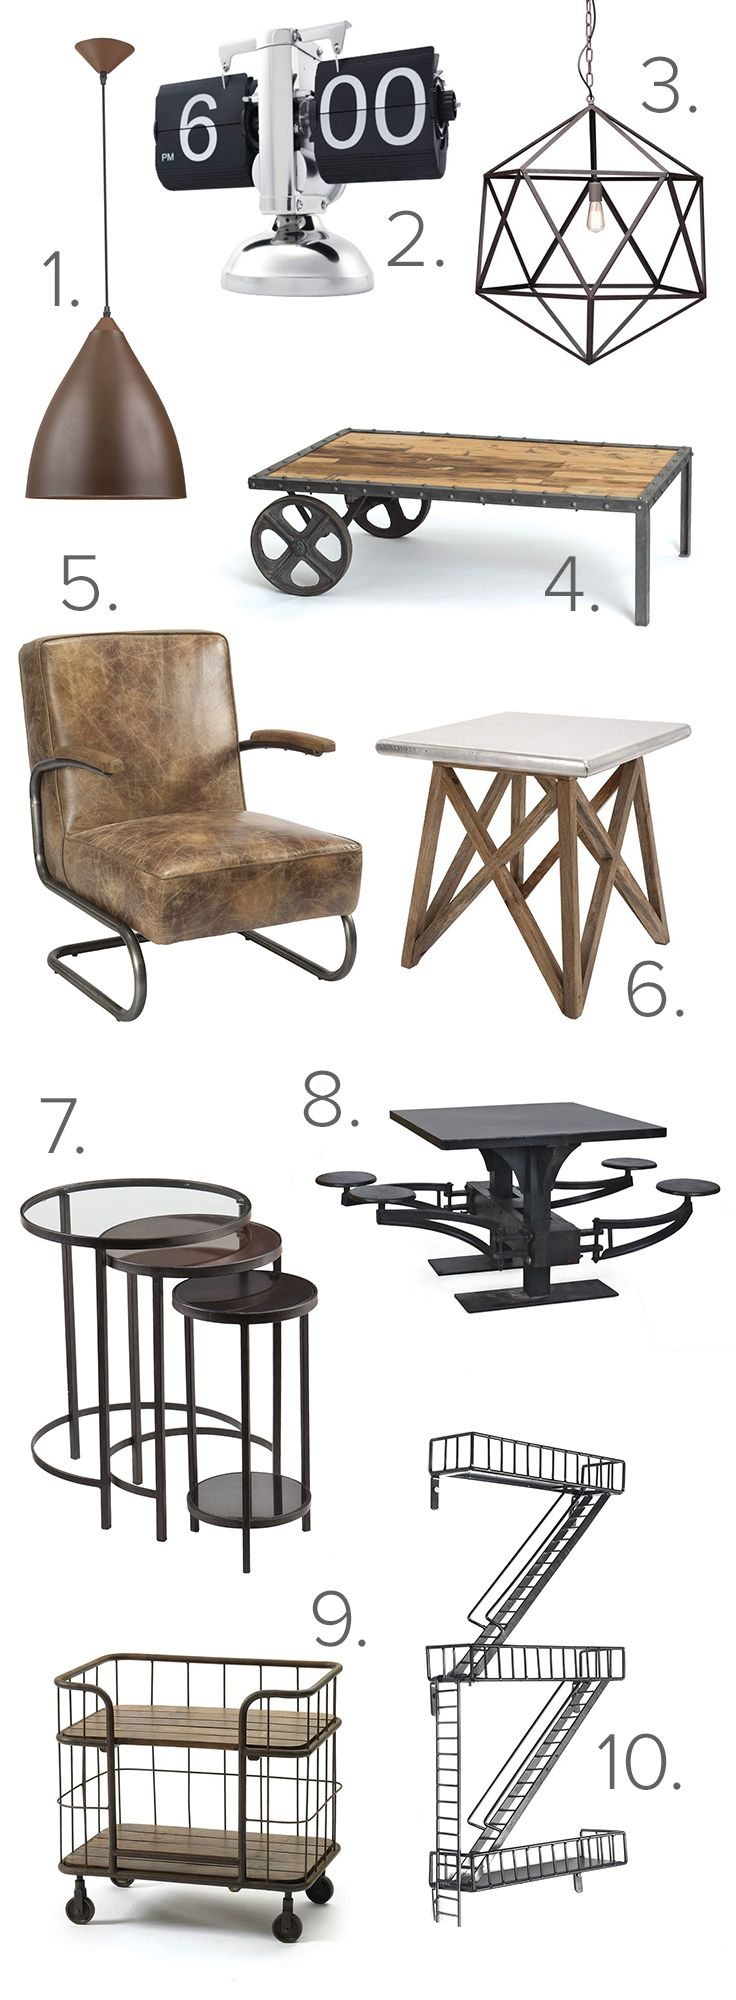 Get This Industrial Look | Discover the Top 10 Trending Industrial Designs!